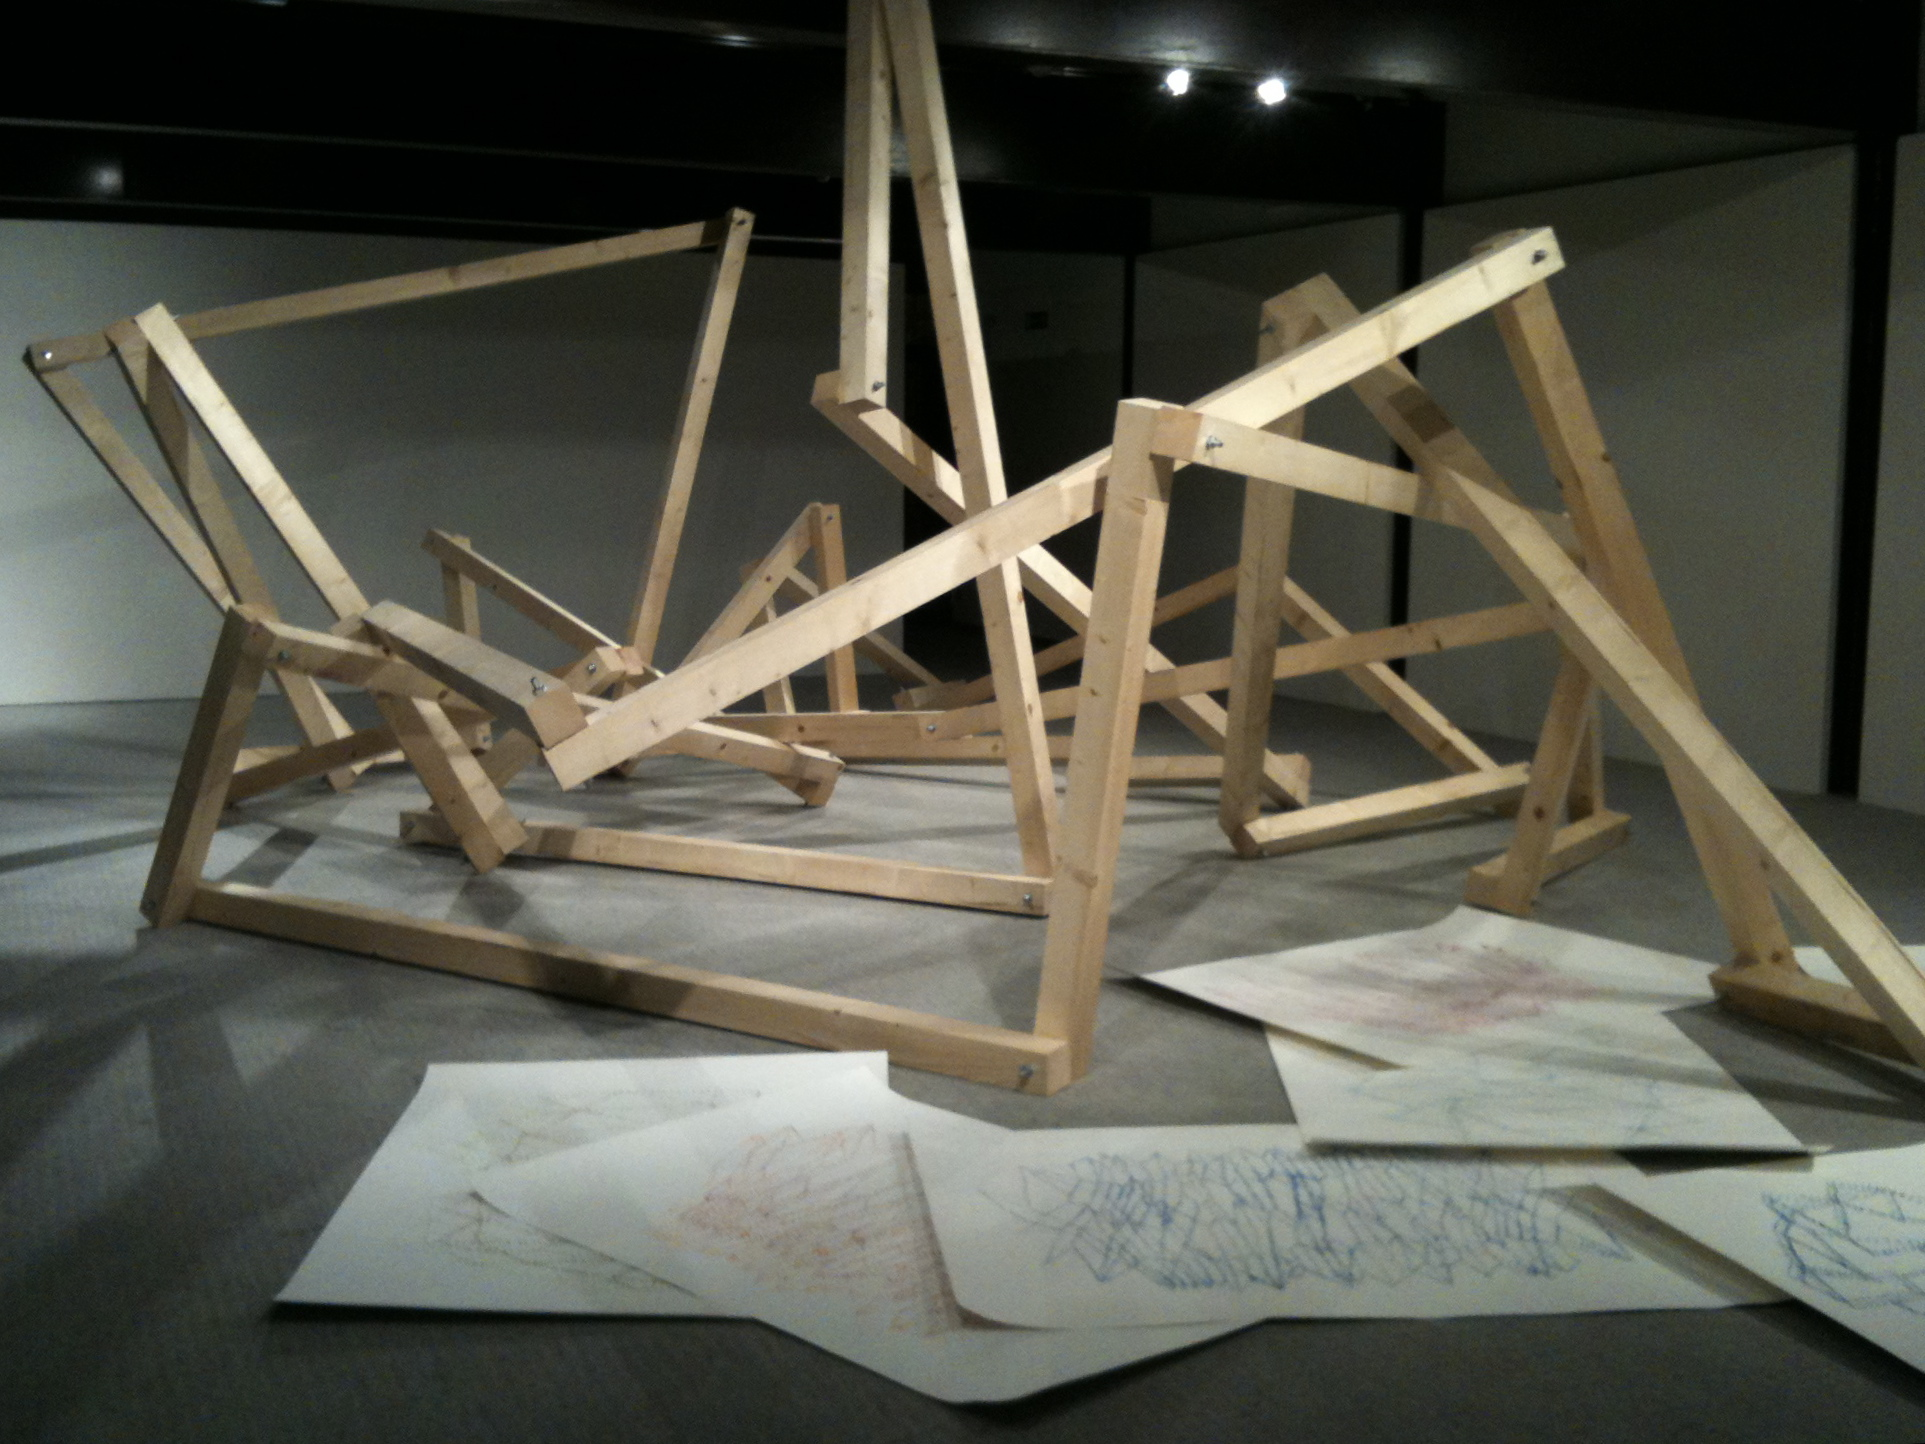 Pierluigi Calignano, Sleeping structure, 2011